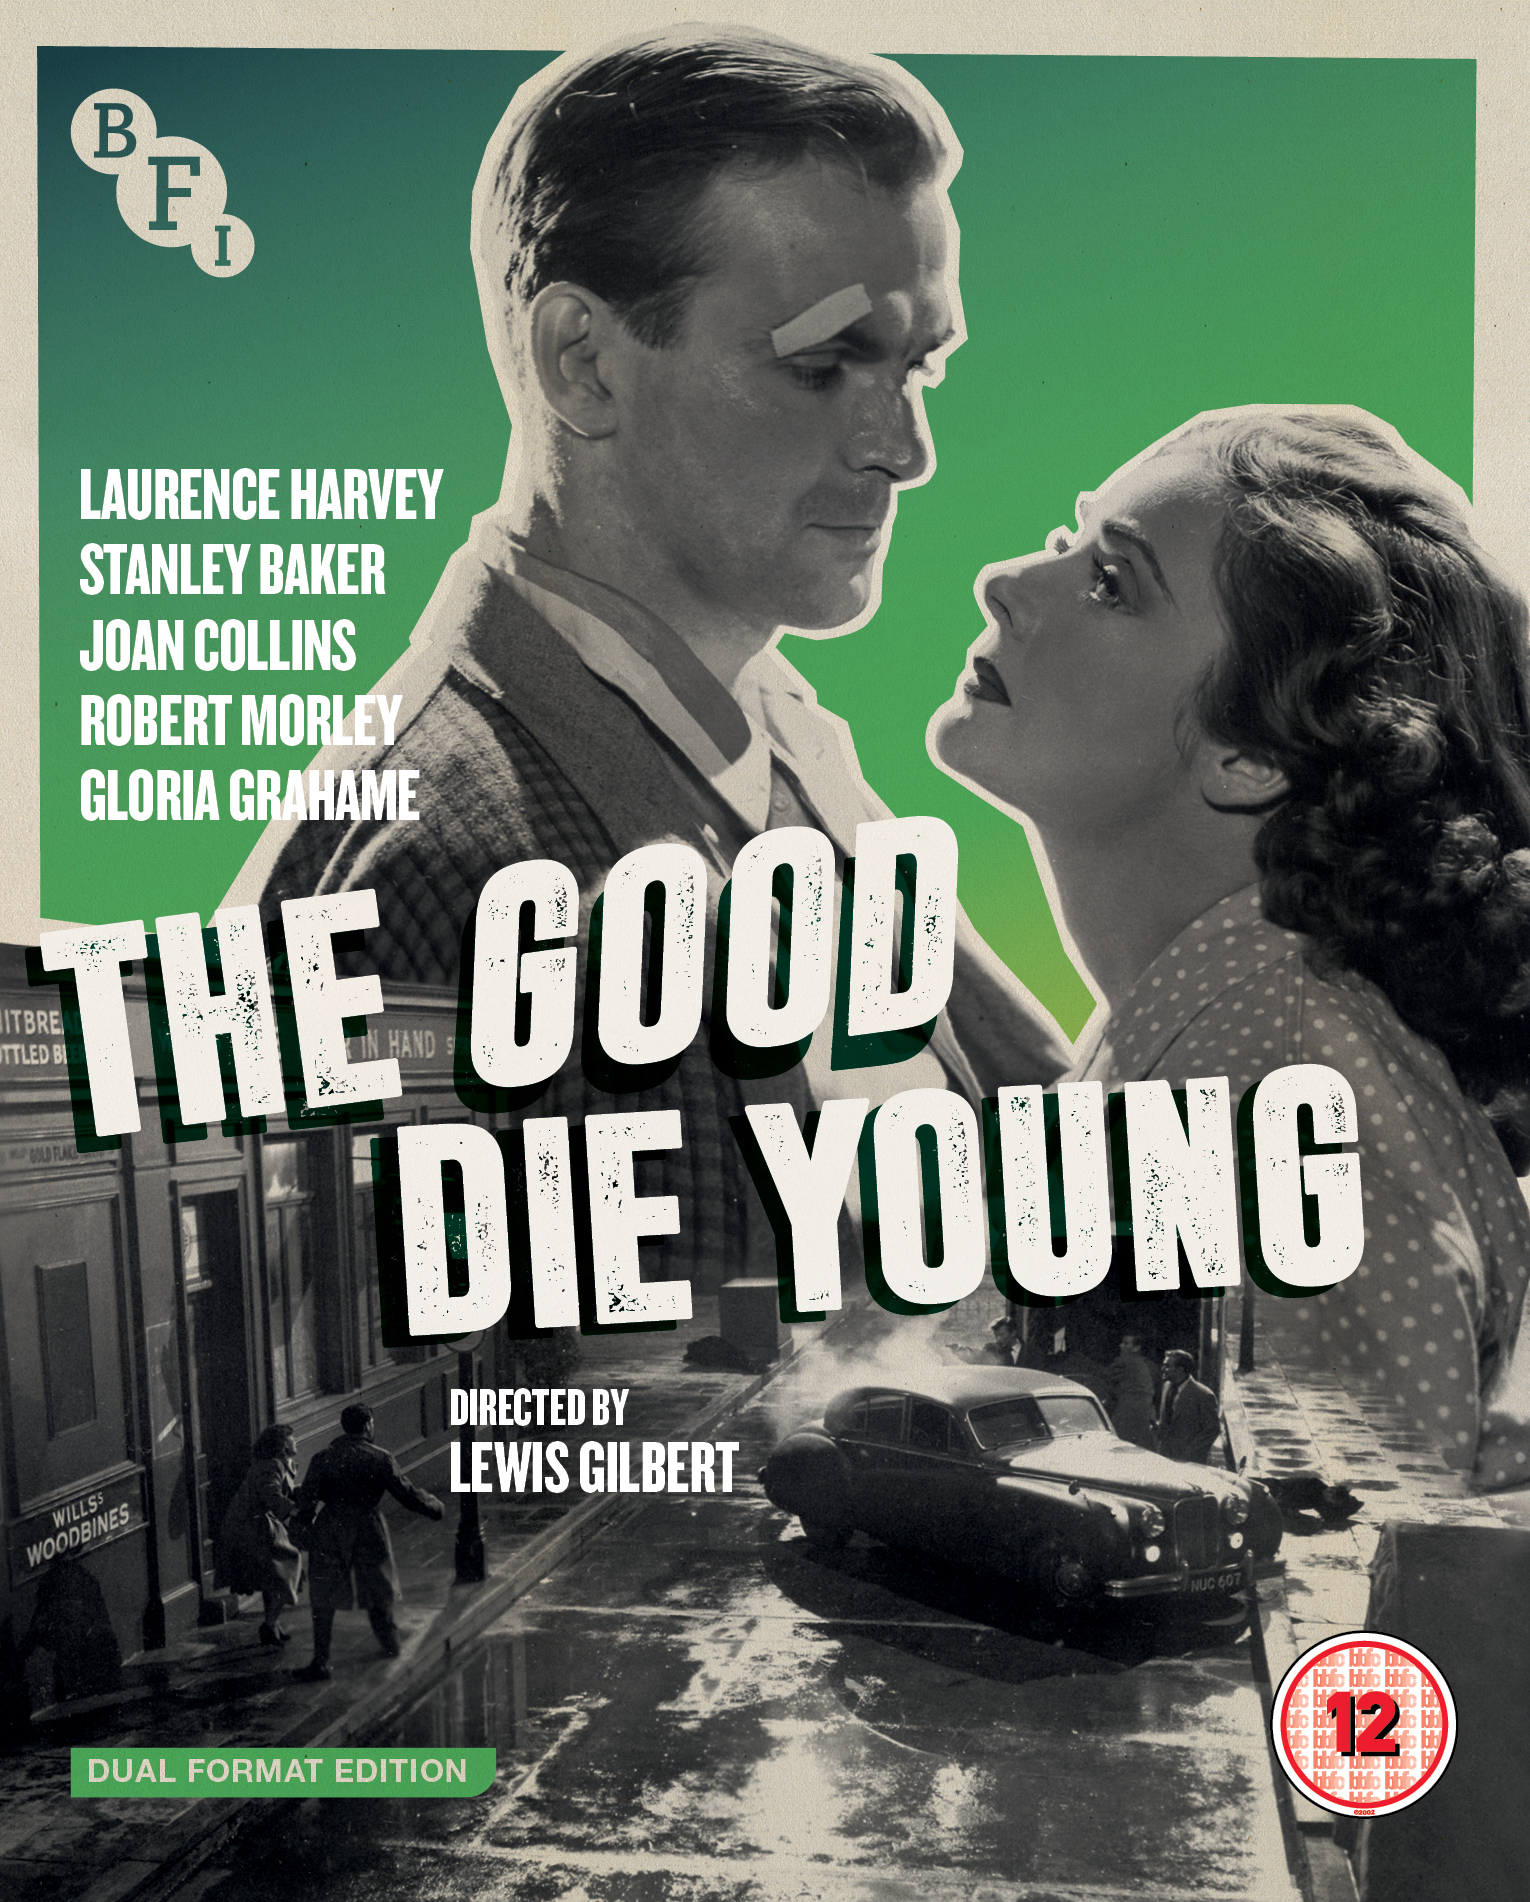 Buy PRE-ORDER The Good Die Young (Dual Format Edition)